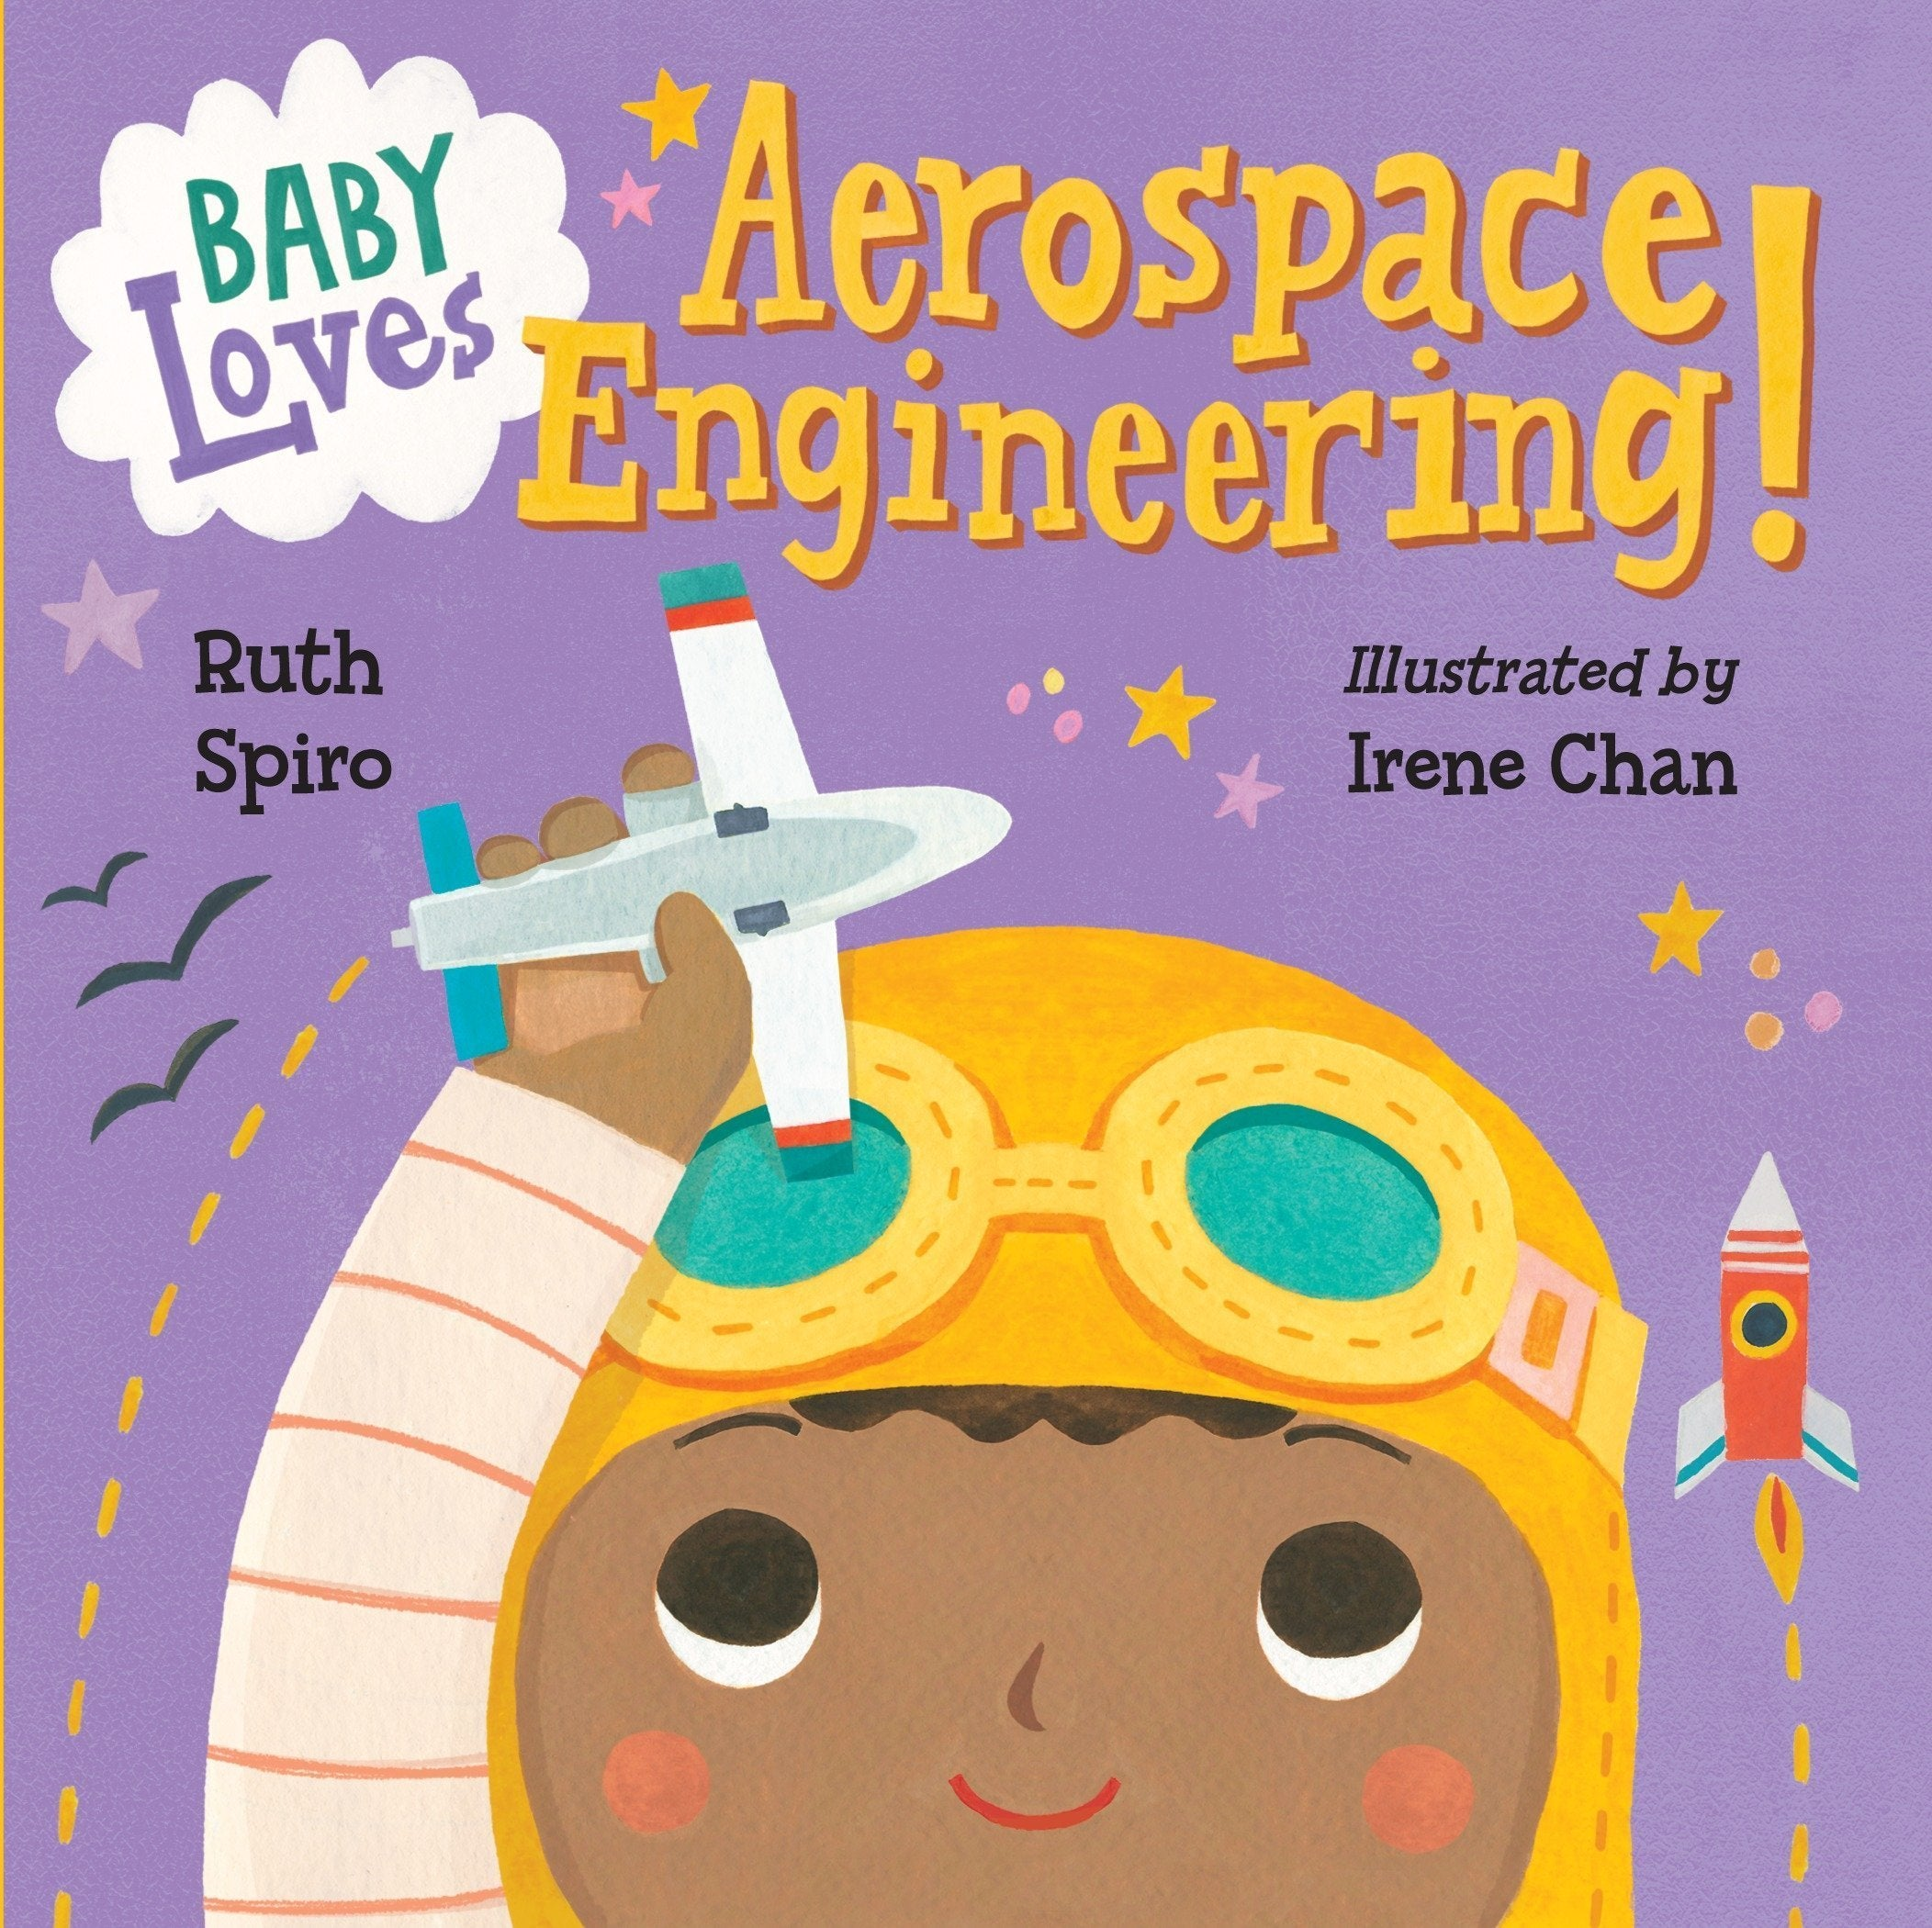 Baby loves aerospace engineering (cover)